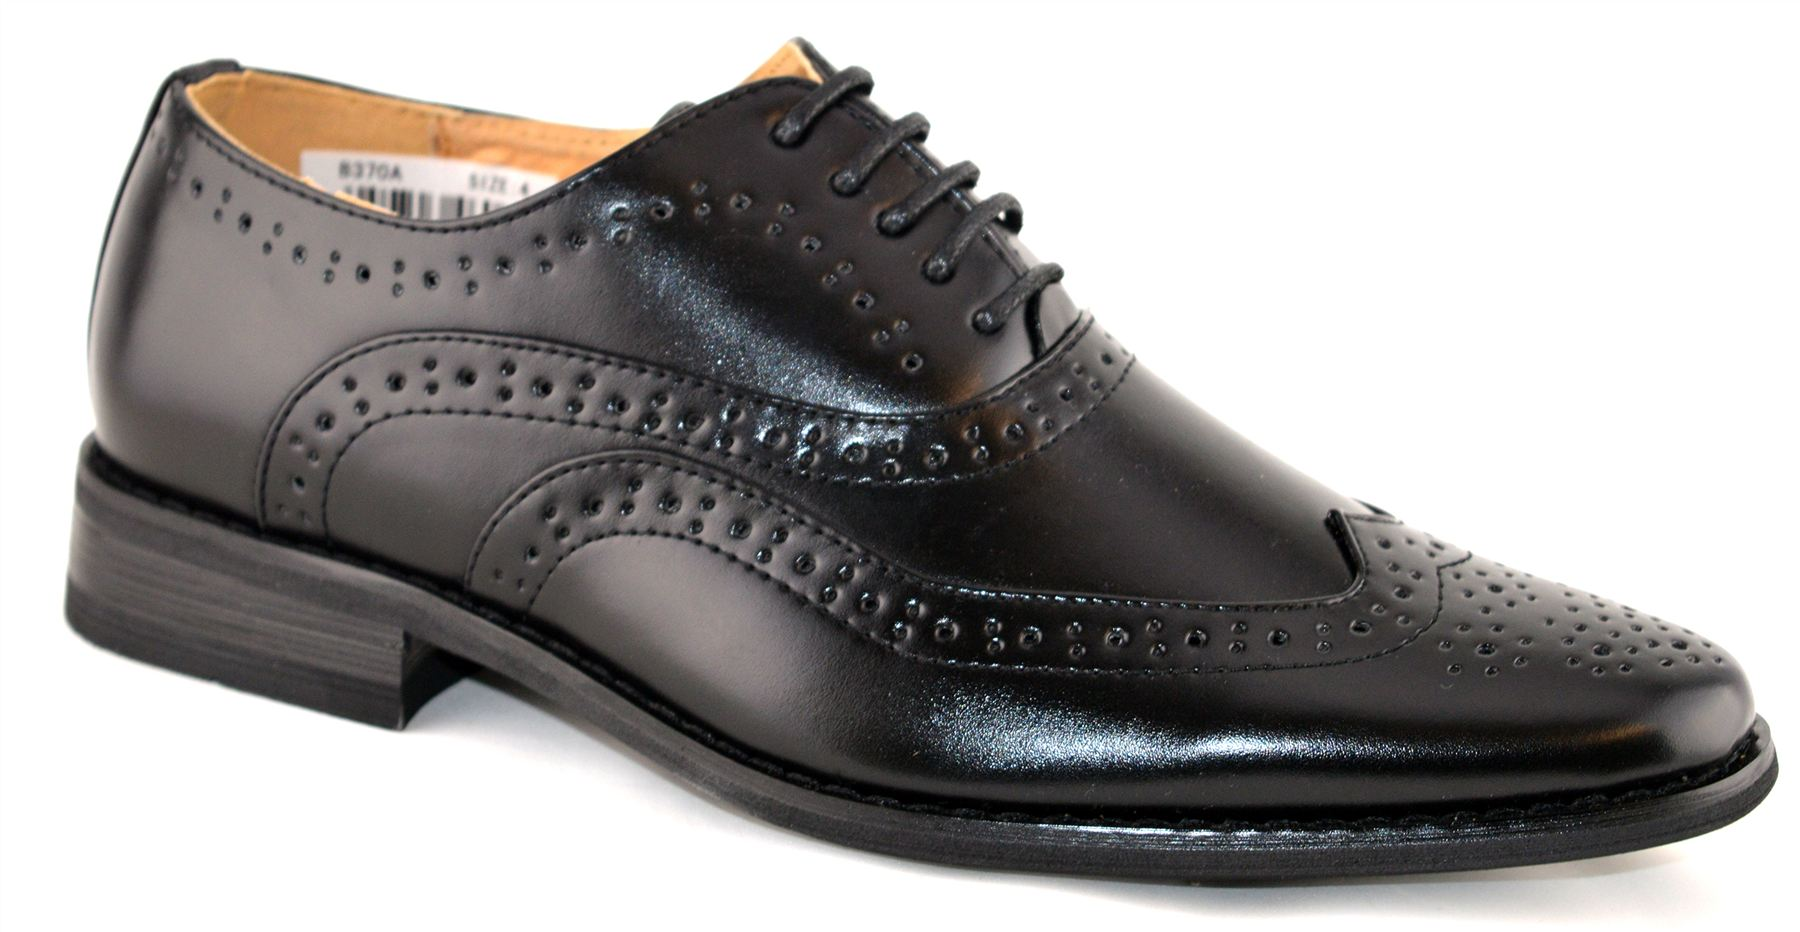 Flamingo Boys Wedding Classic Black Patent Brogue Hook and Loop Formal Prom Shoes. £ JCDees Boys Brogue Style Formal/School Shoes. £ SIRRI Boys Tan Brogues Boys Formal Oxford Shoes Kids Wedding Communion Shoes Kids Brogue Shoes. £ 5 out of 5 stars 3.